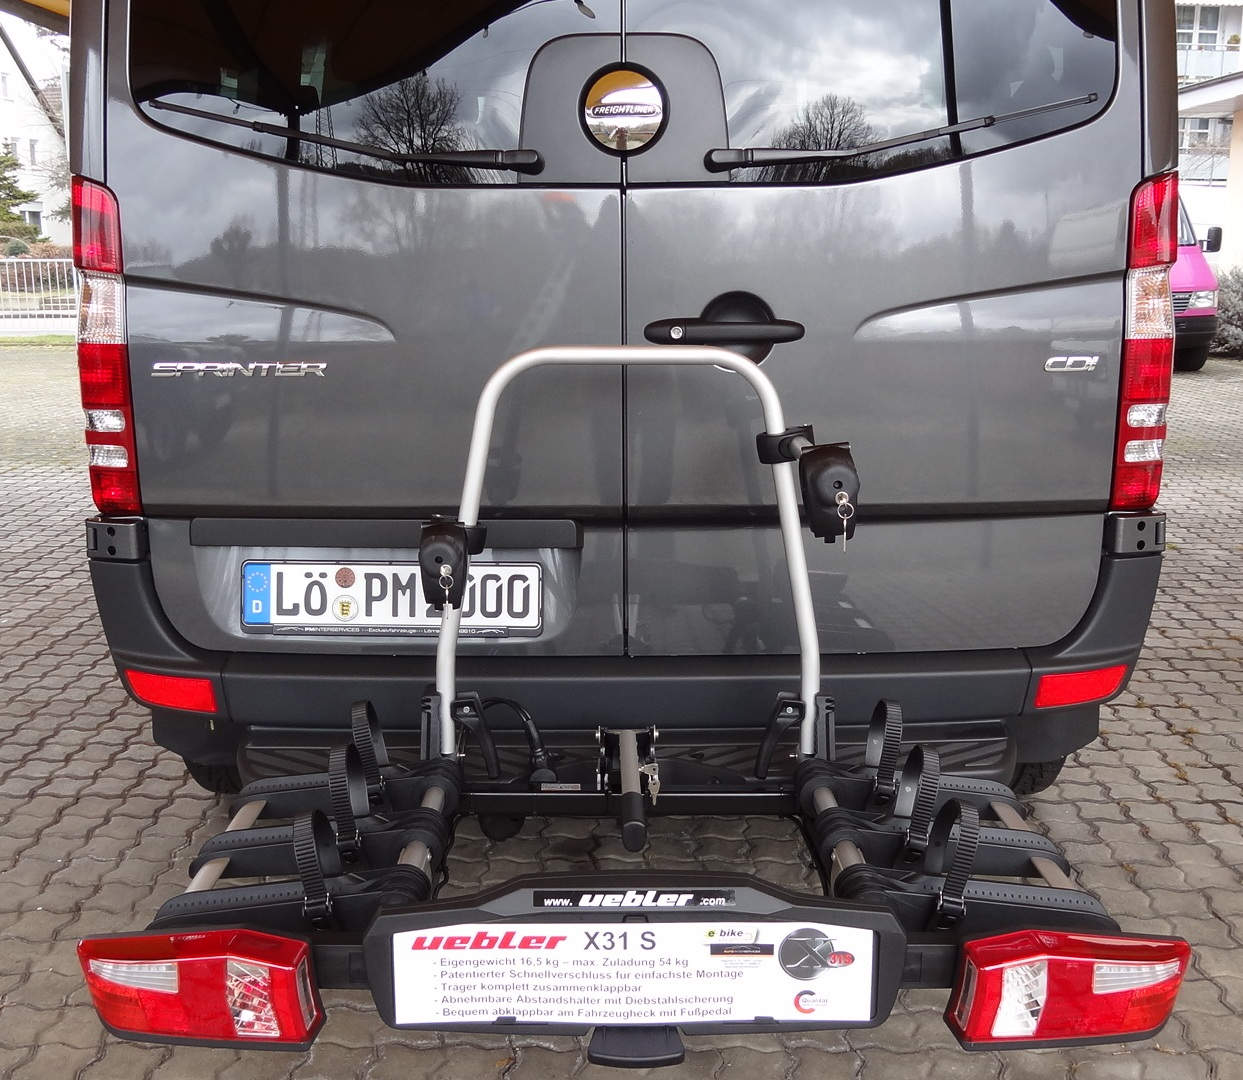 Uebler X31 S am Sprinter